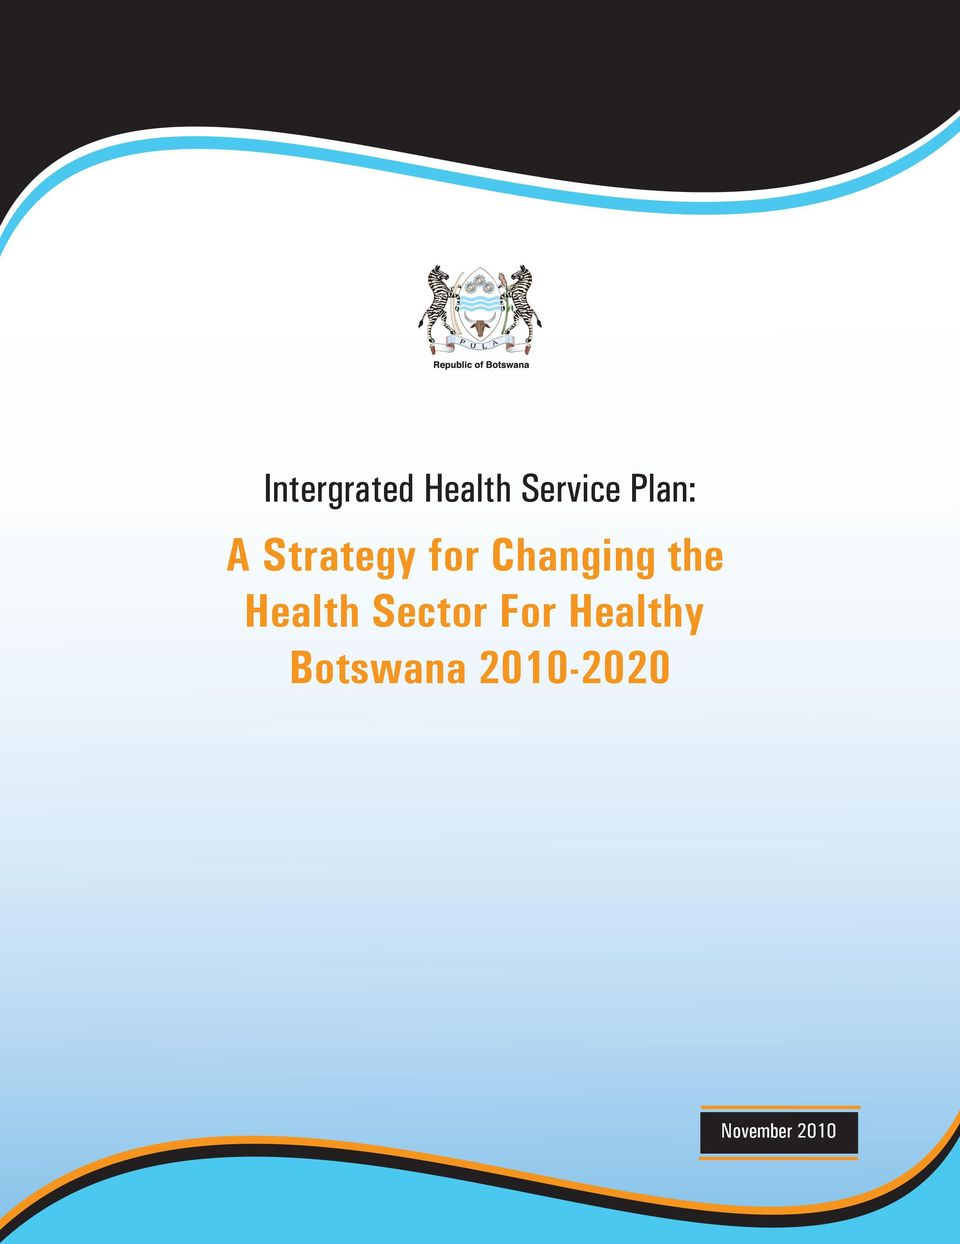 the Health Sector For Healthy